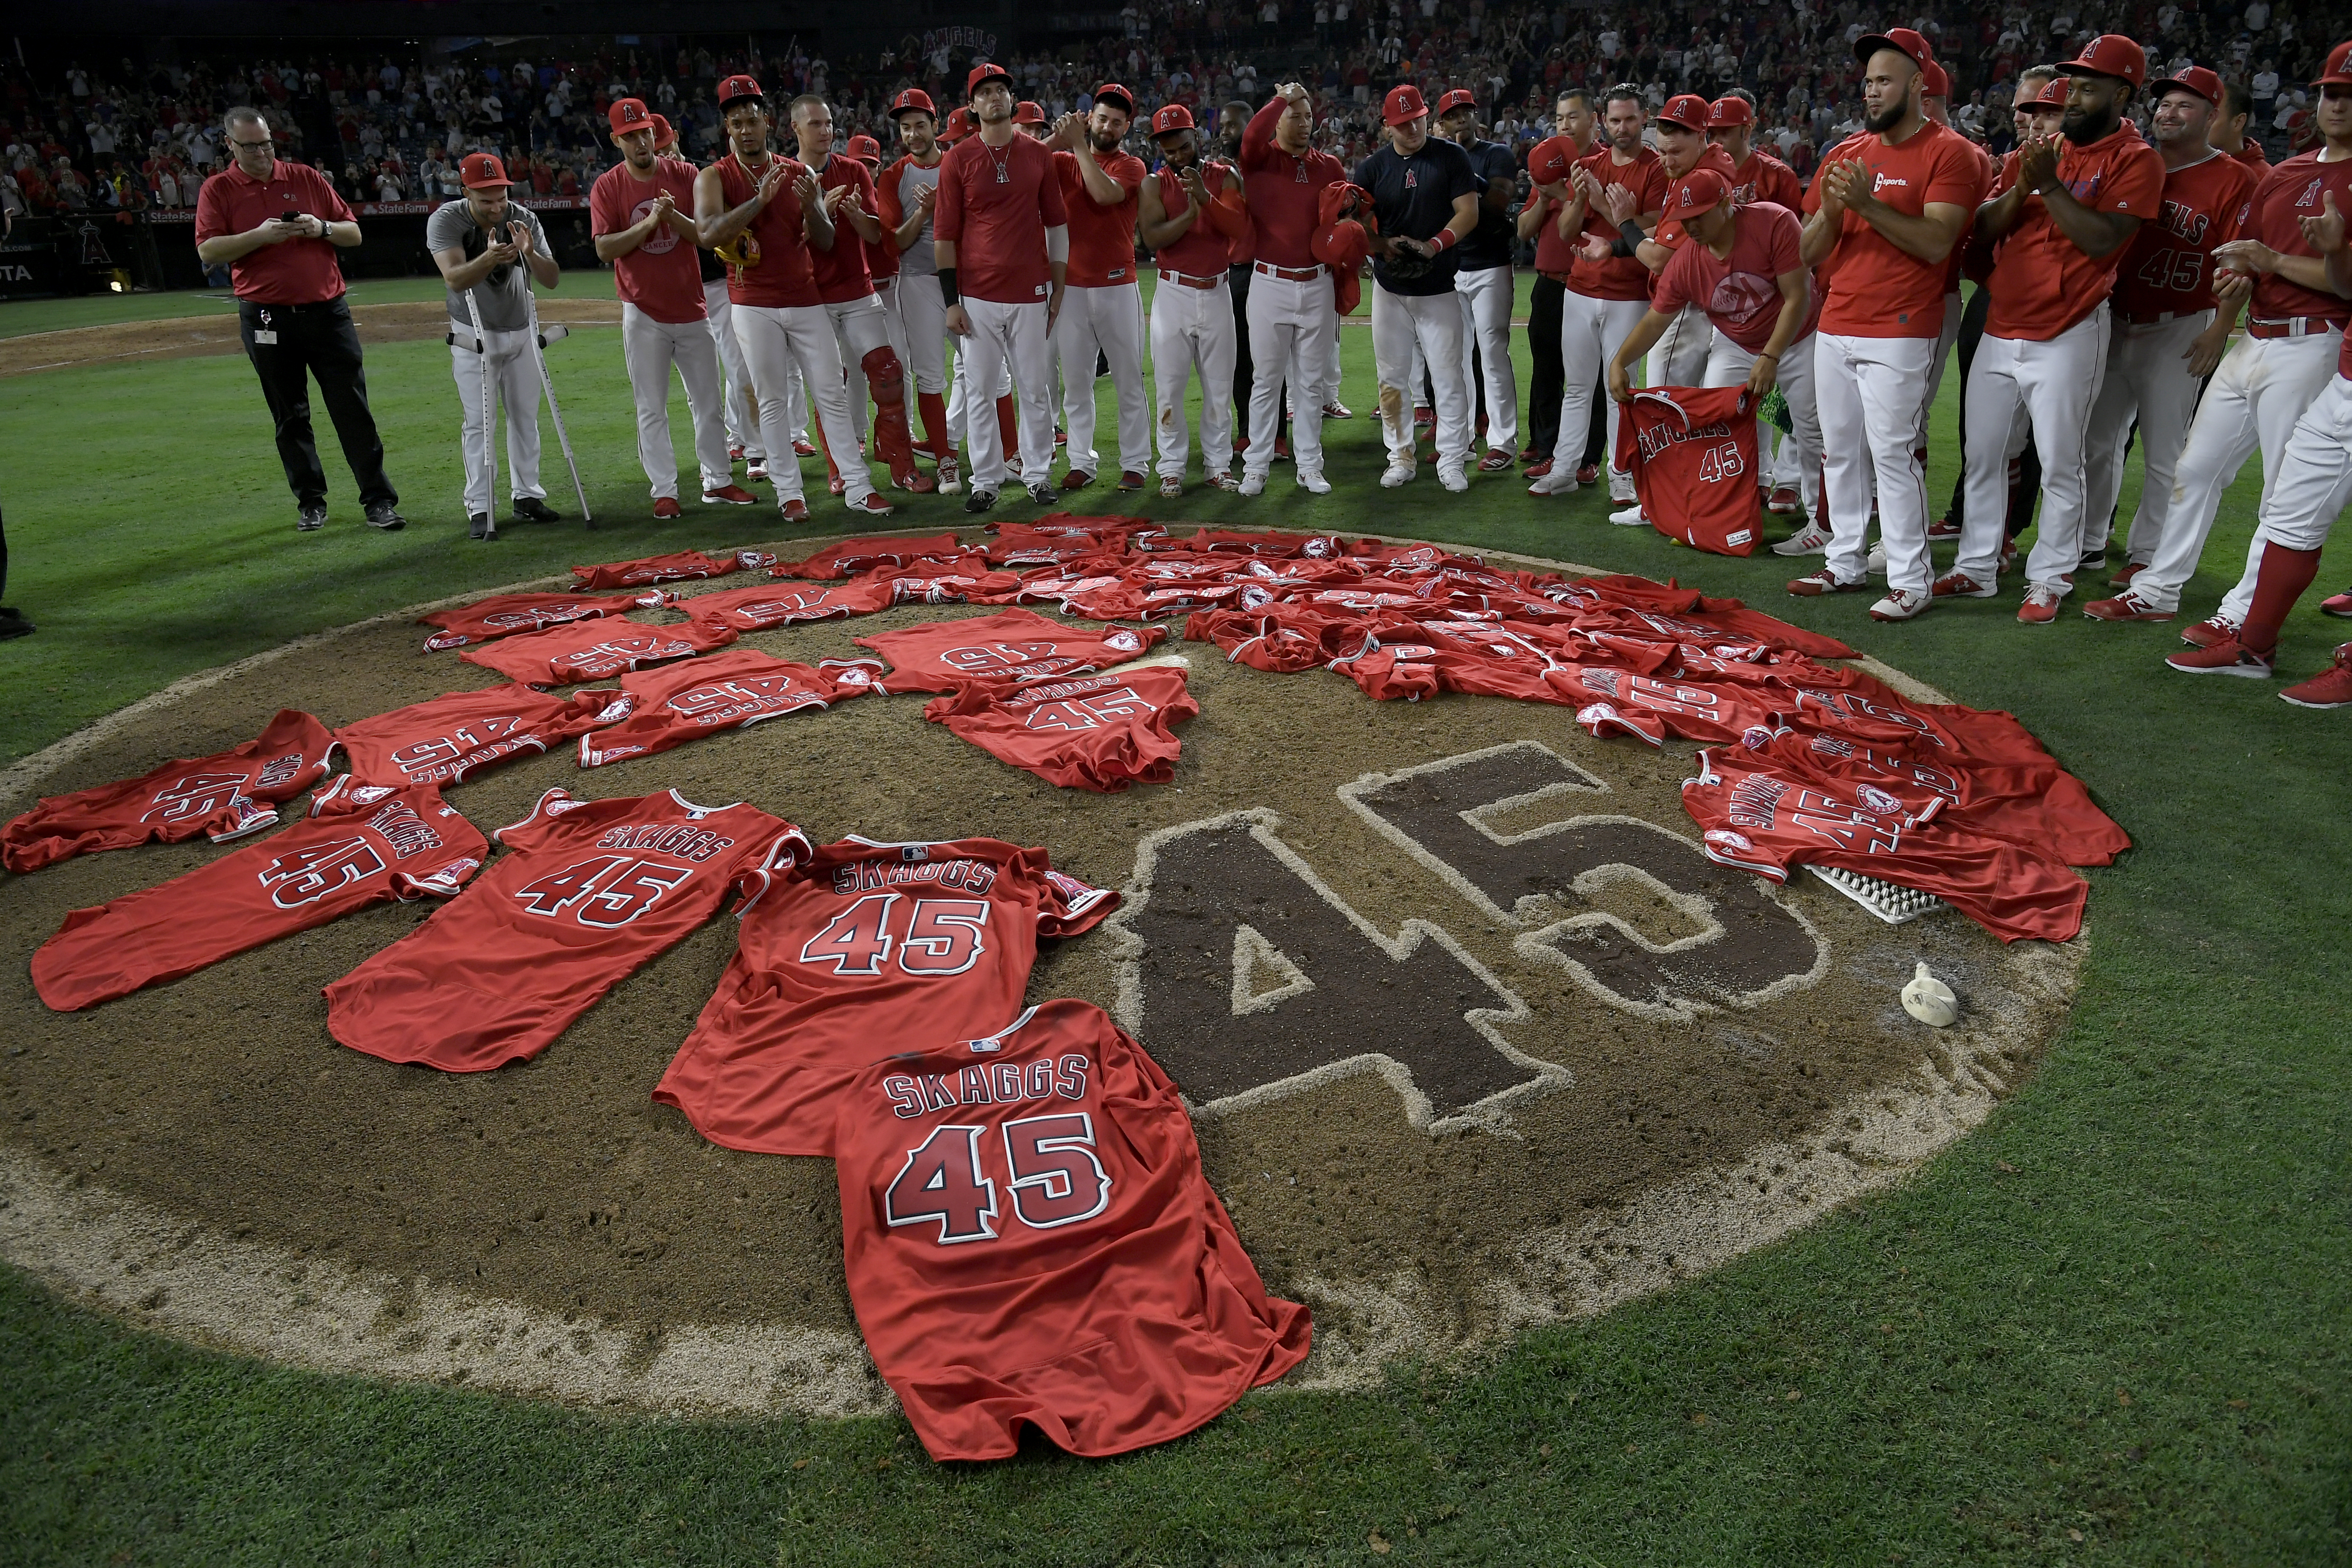 Angels no-hitter honors Tyler Skaggs